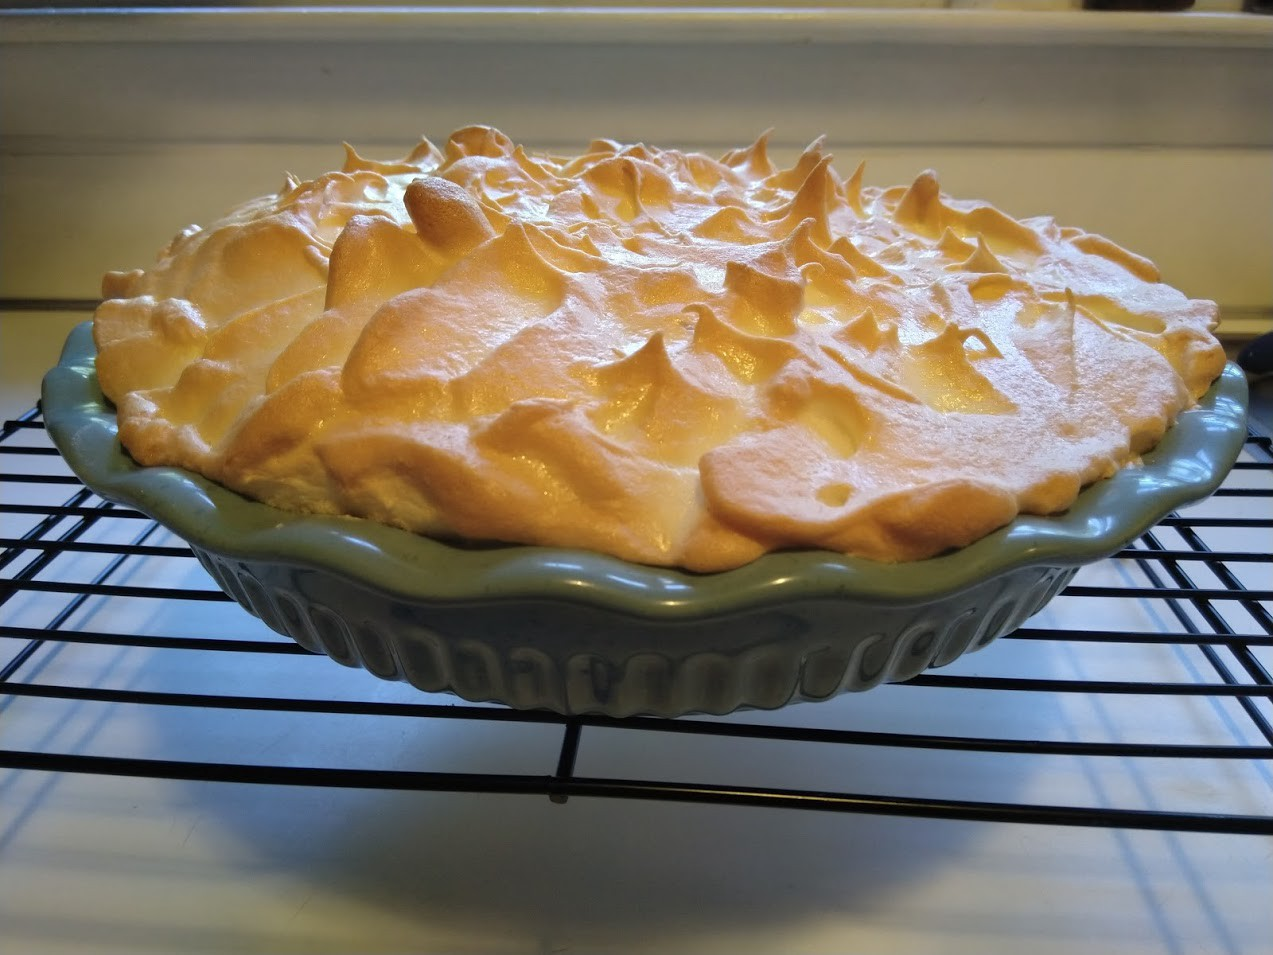 A golden brown merangue pie in a teal ceramic pie dish, cooling on a rack